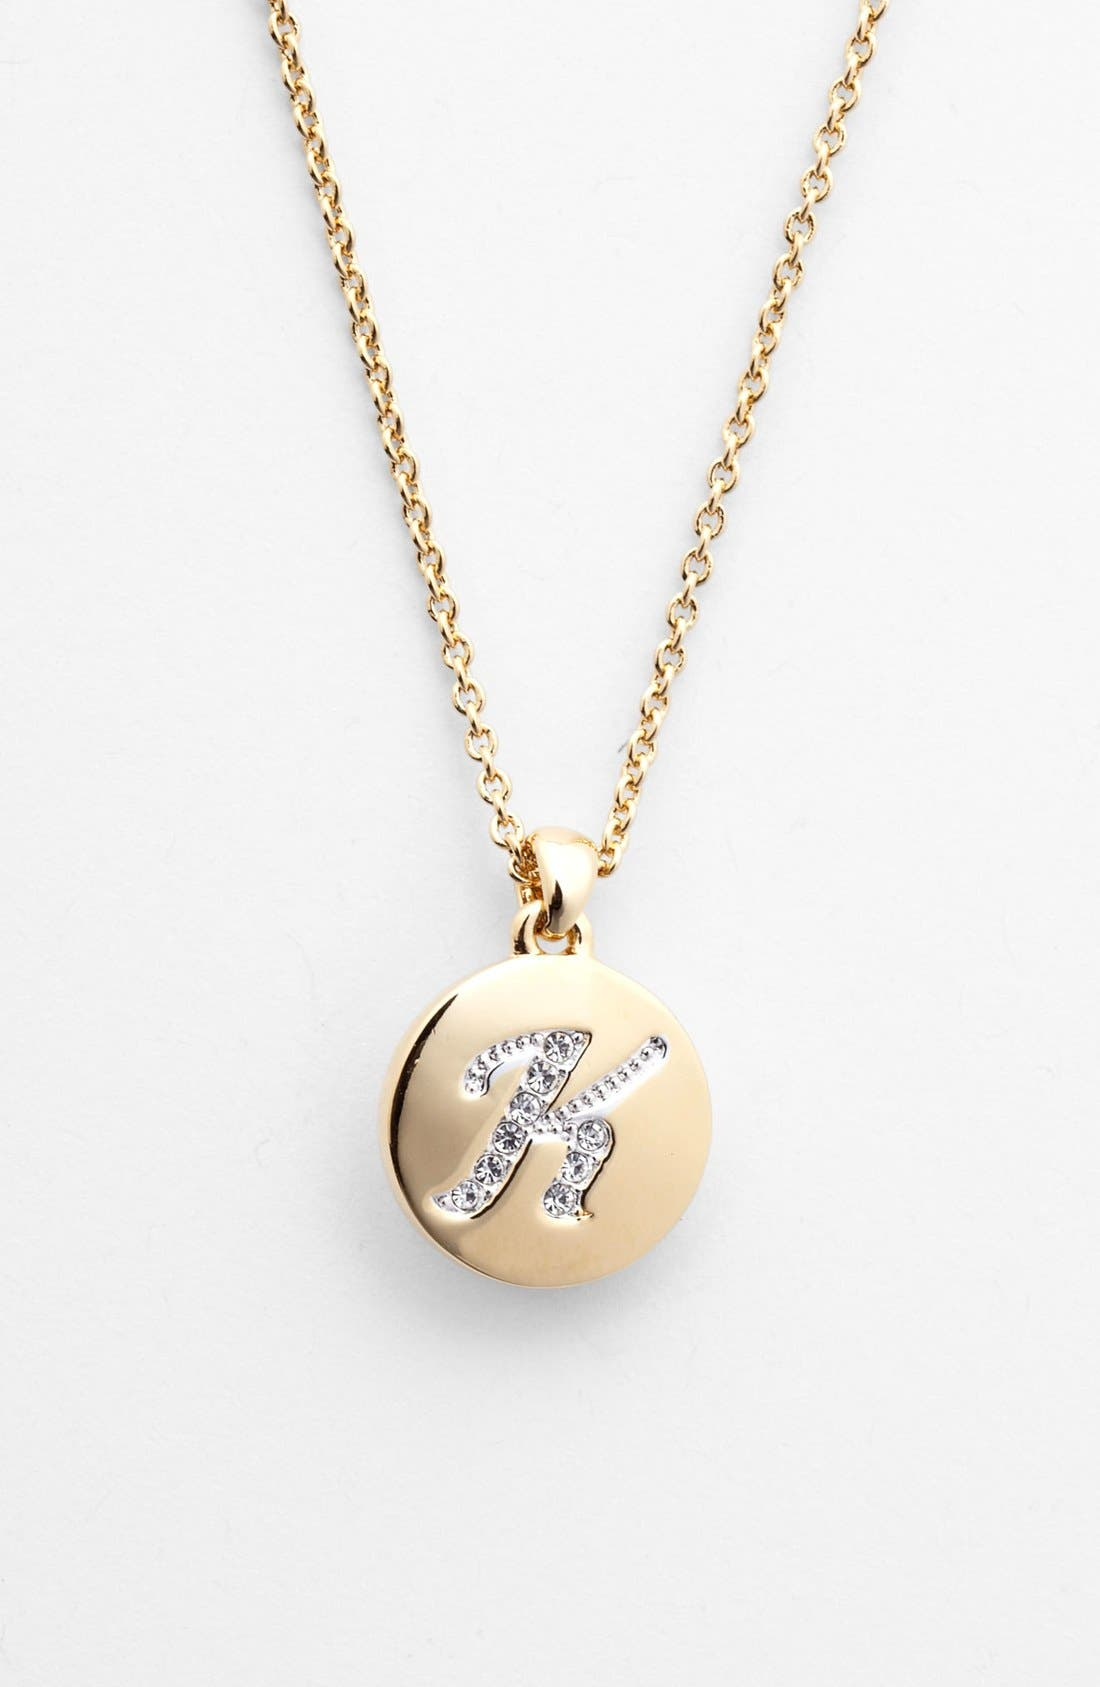 Alternate Image 1 Selected - Nadri Boxed Initial Pendant Necklace (Nordstrom Exclusive)